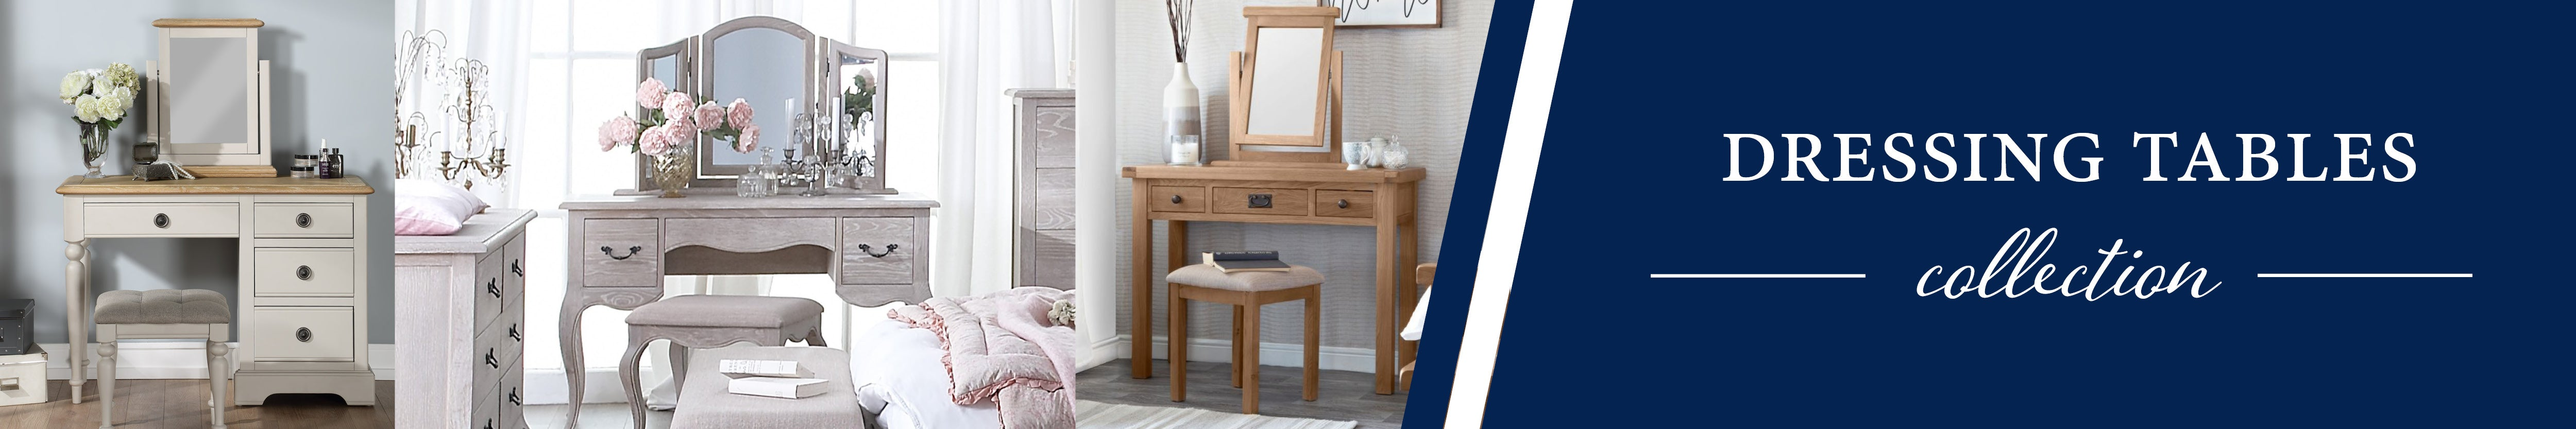 HomePlus Furniture | Dressing Table Collection